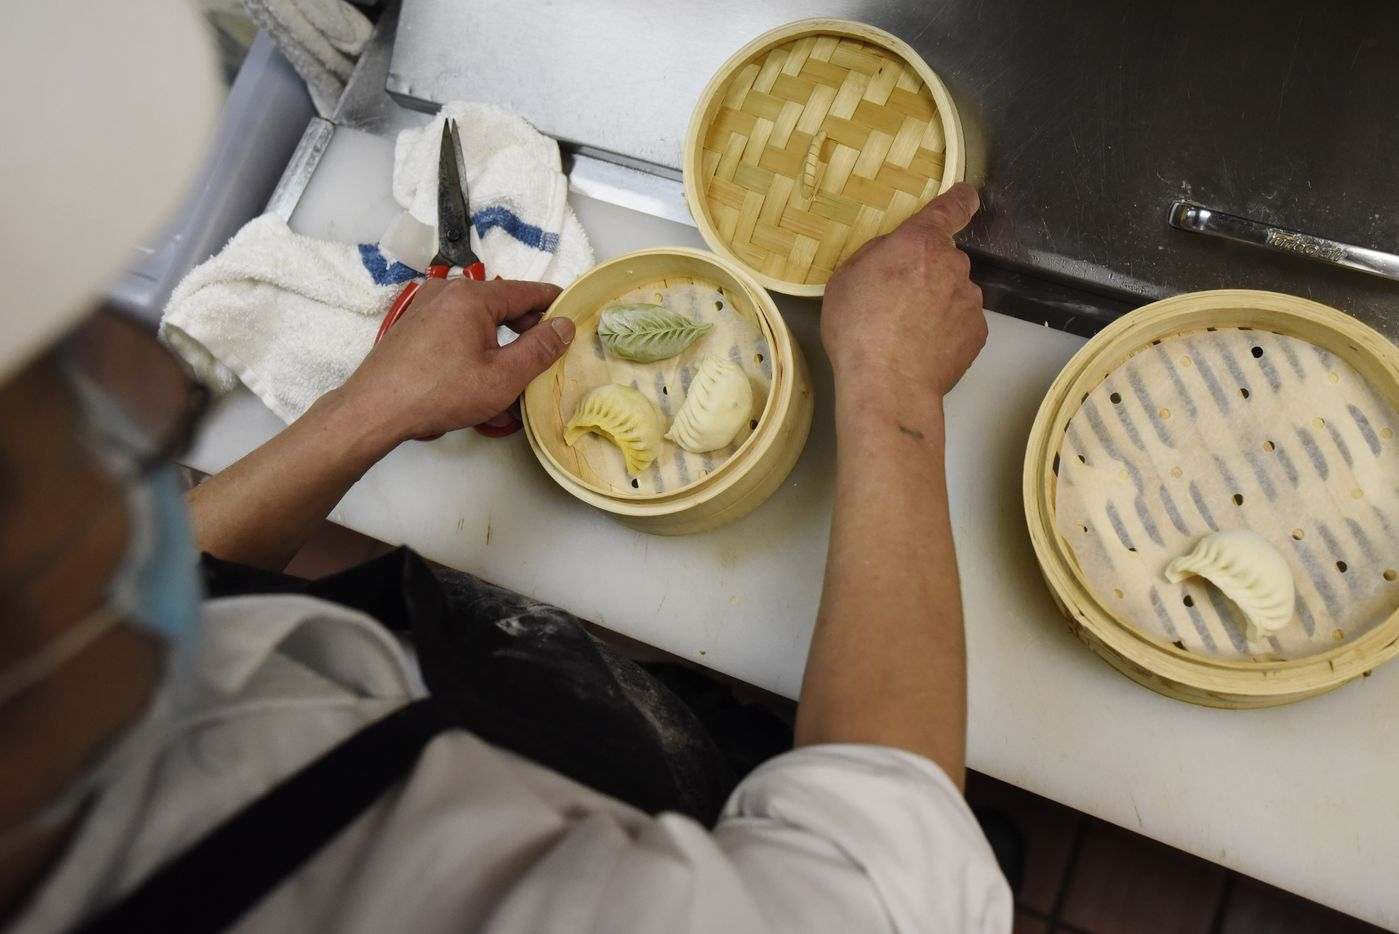 Dumpling chef Harrison Huang prepares a combo of dumplings containing veggie, chicken and pork/shrimp, at Kitchen Master restaurant in Frisco, Sunday, May 31, 2020.